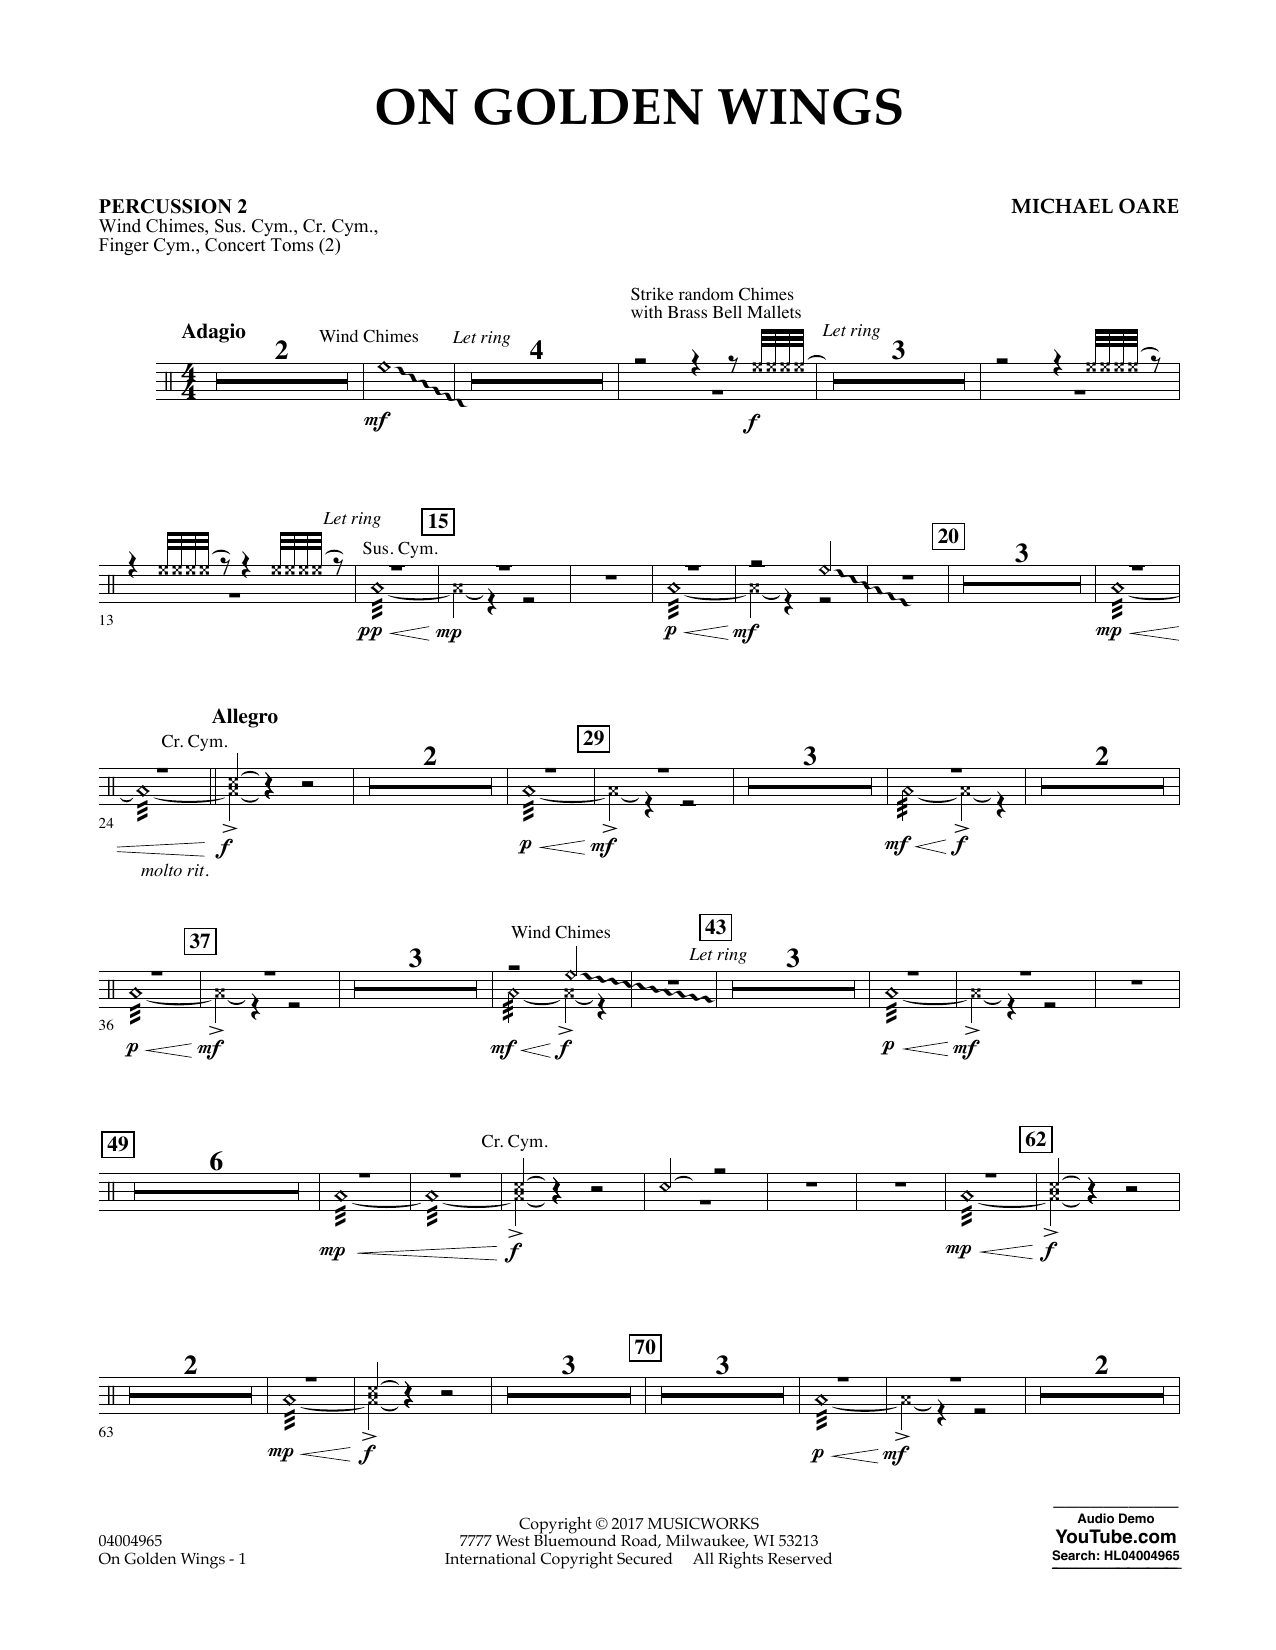 Michael Oare On Golden Wings - Percussion 2 sheet music notes and chords. Download Printable PDF.